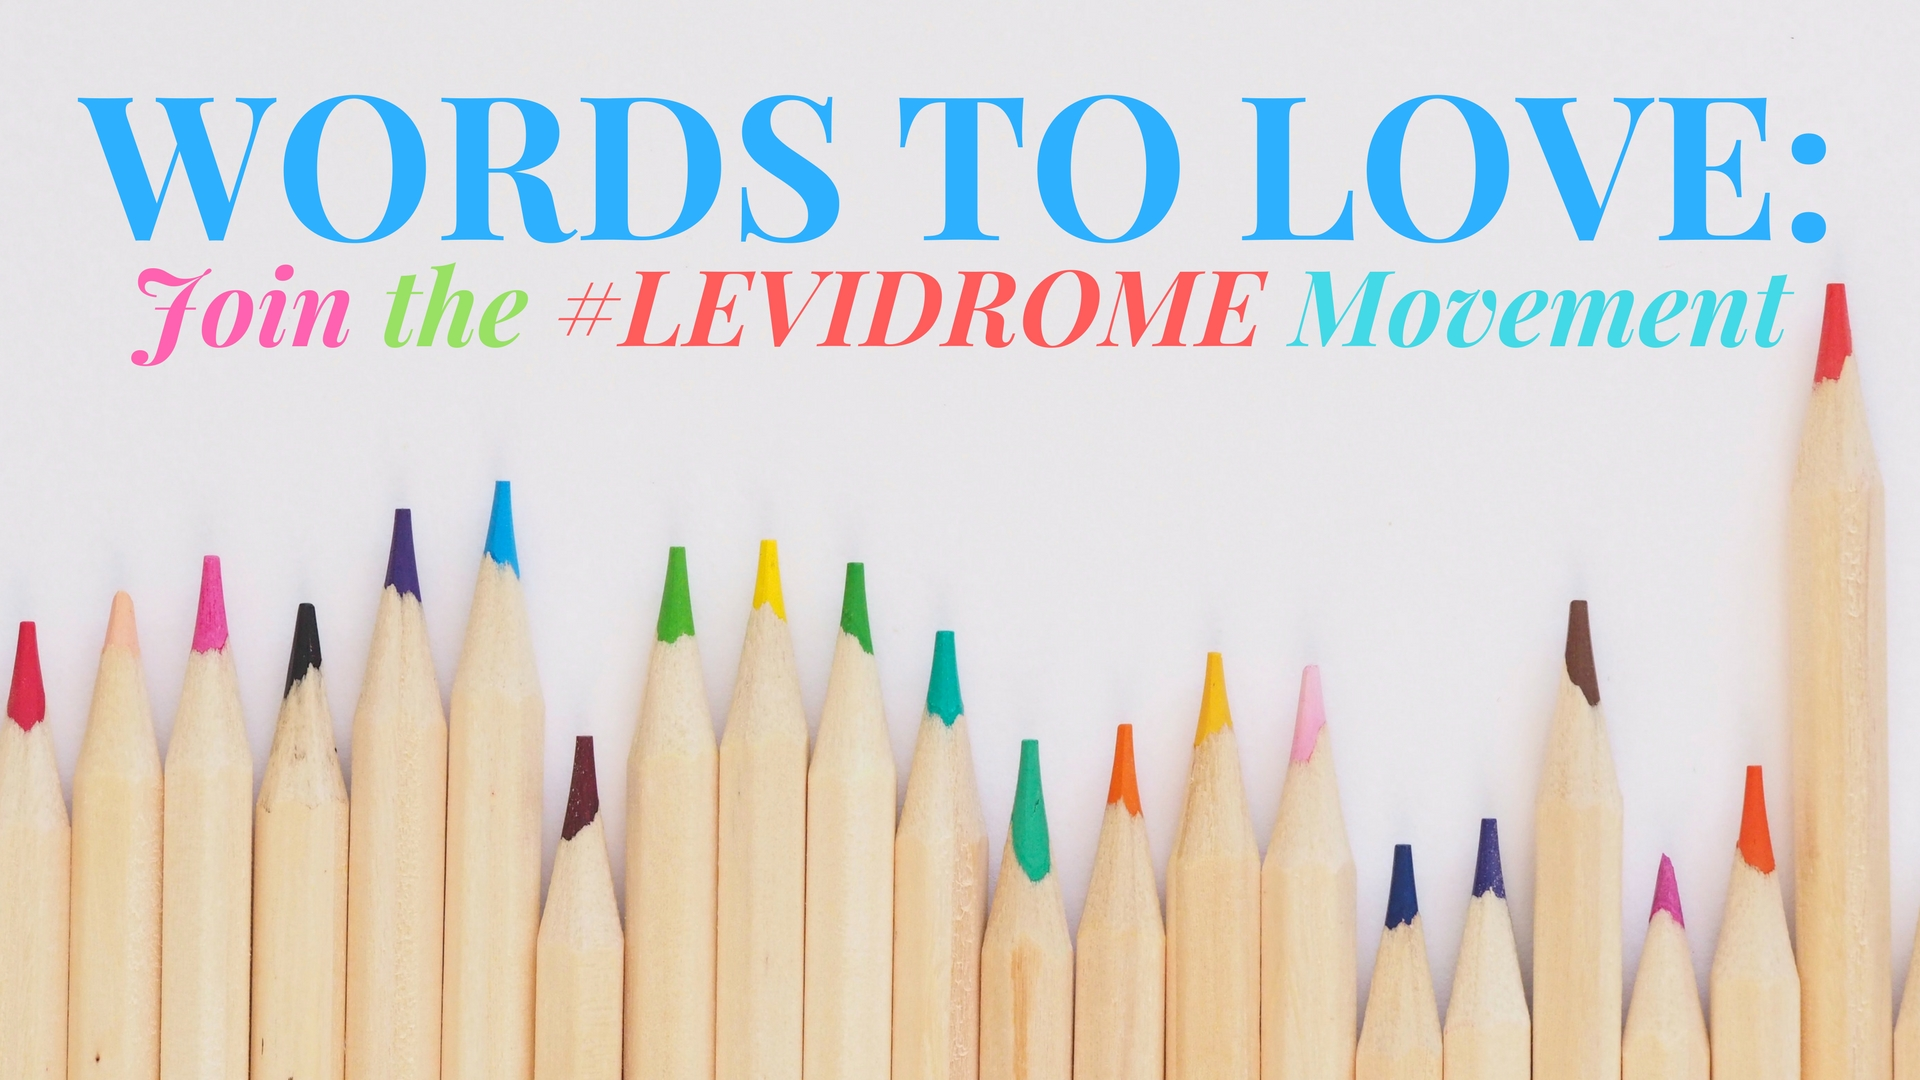 banner-words-to-love-levidrome-movement.jpg